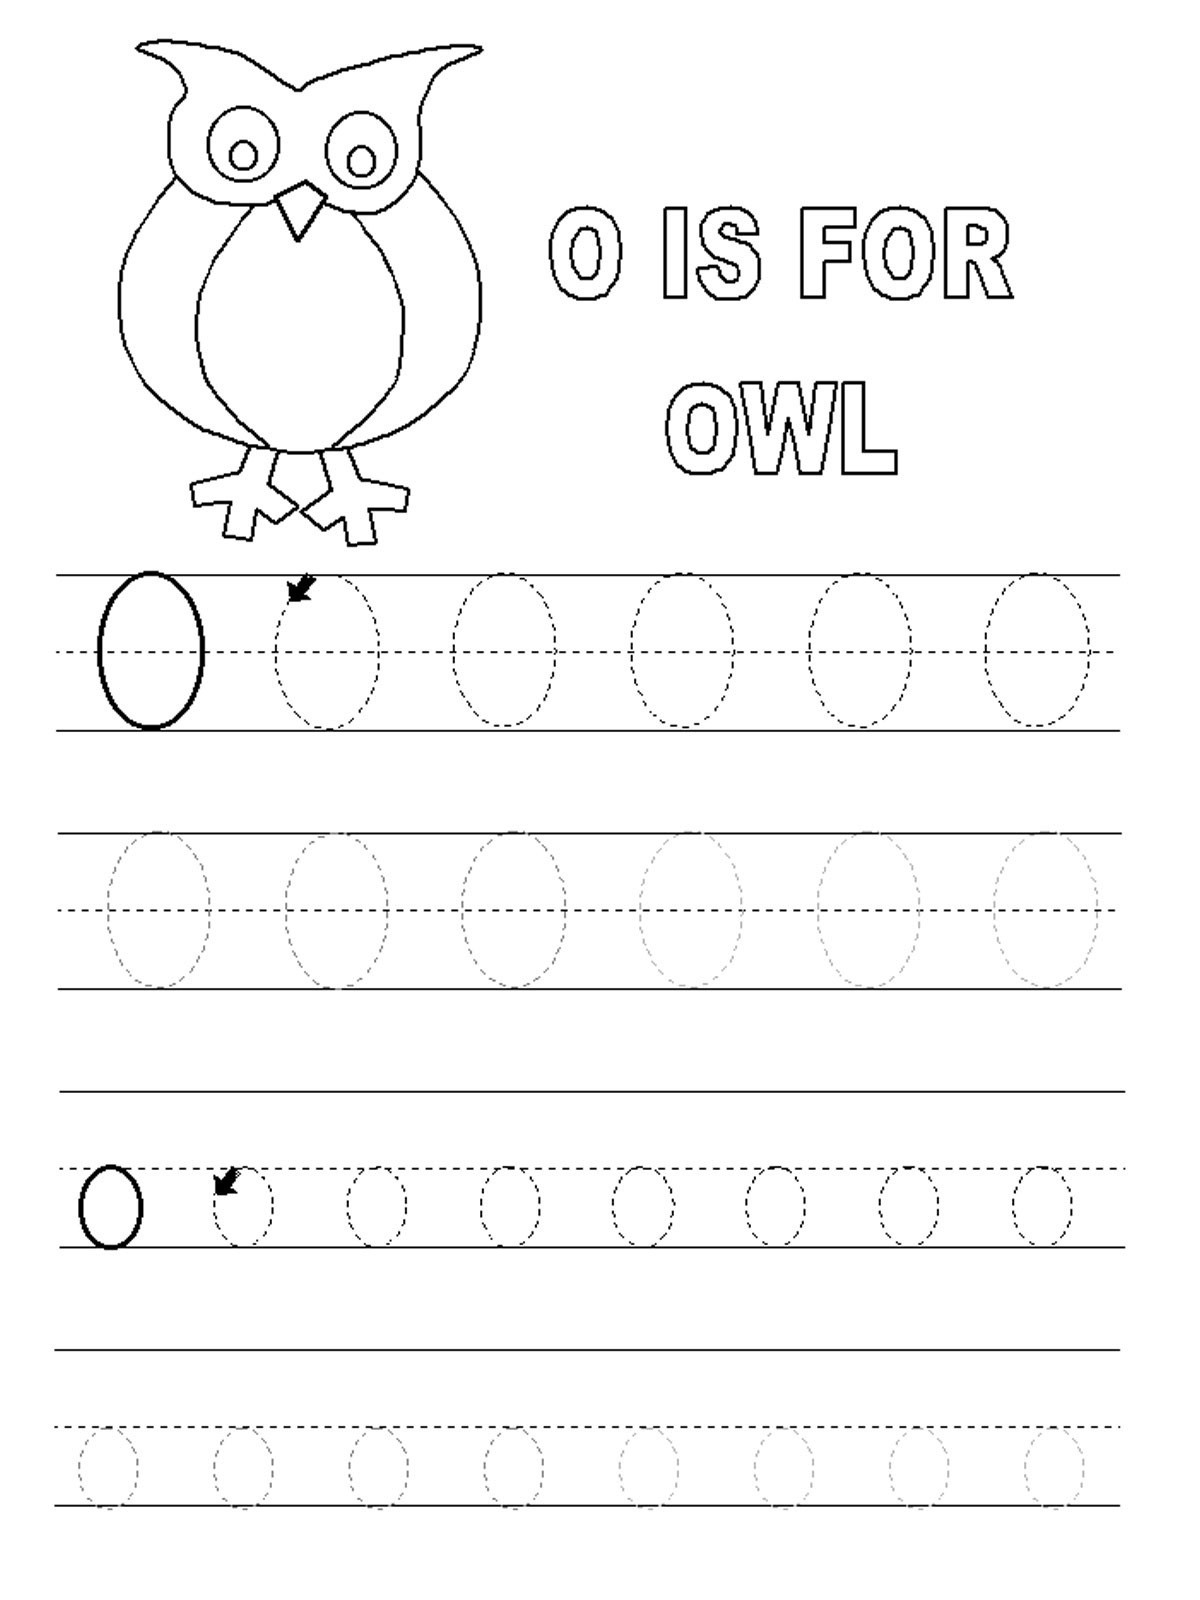 Ou Ow Worksheets 2nd Grade Worksheet with Letter Printable Worksheets and Activities